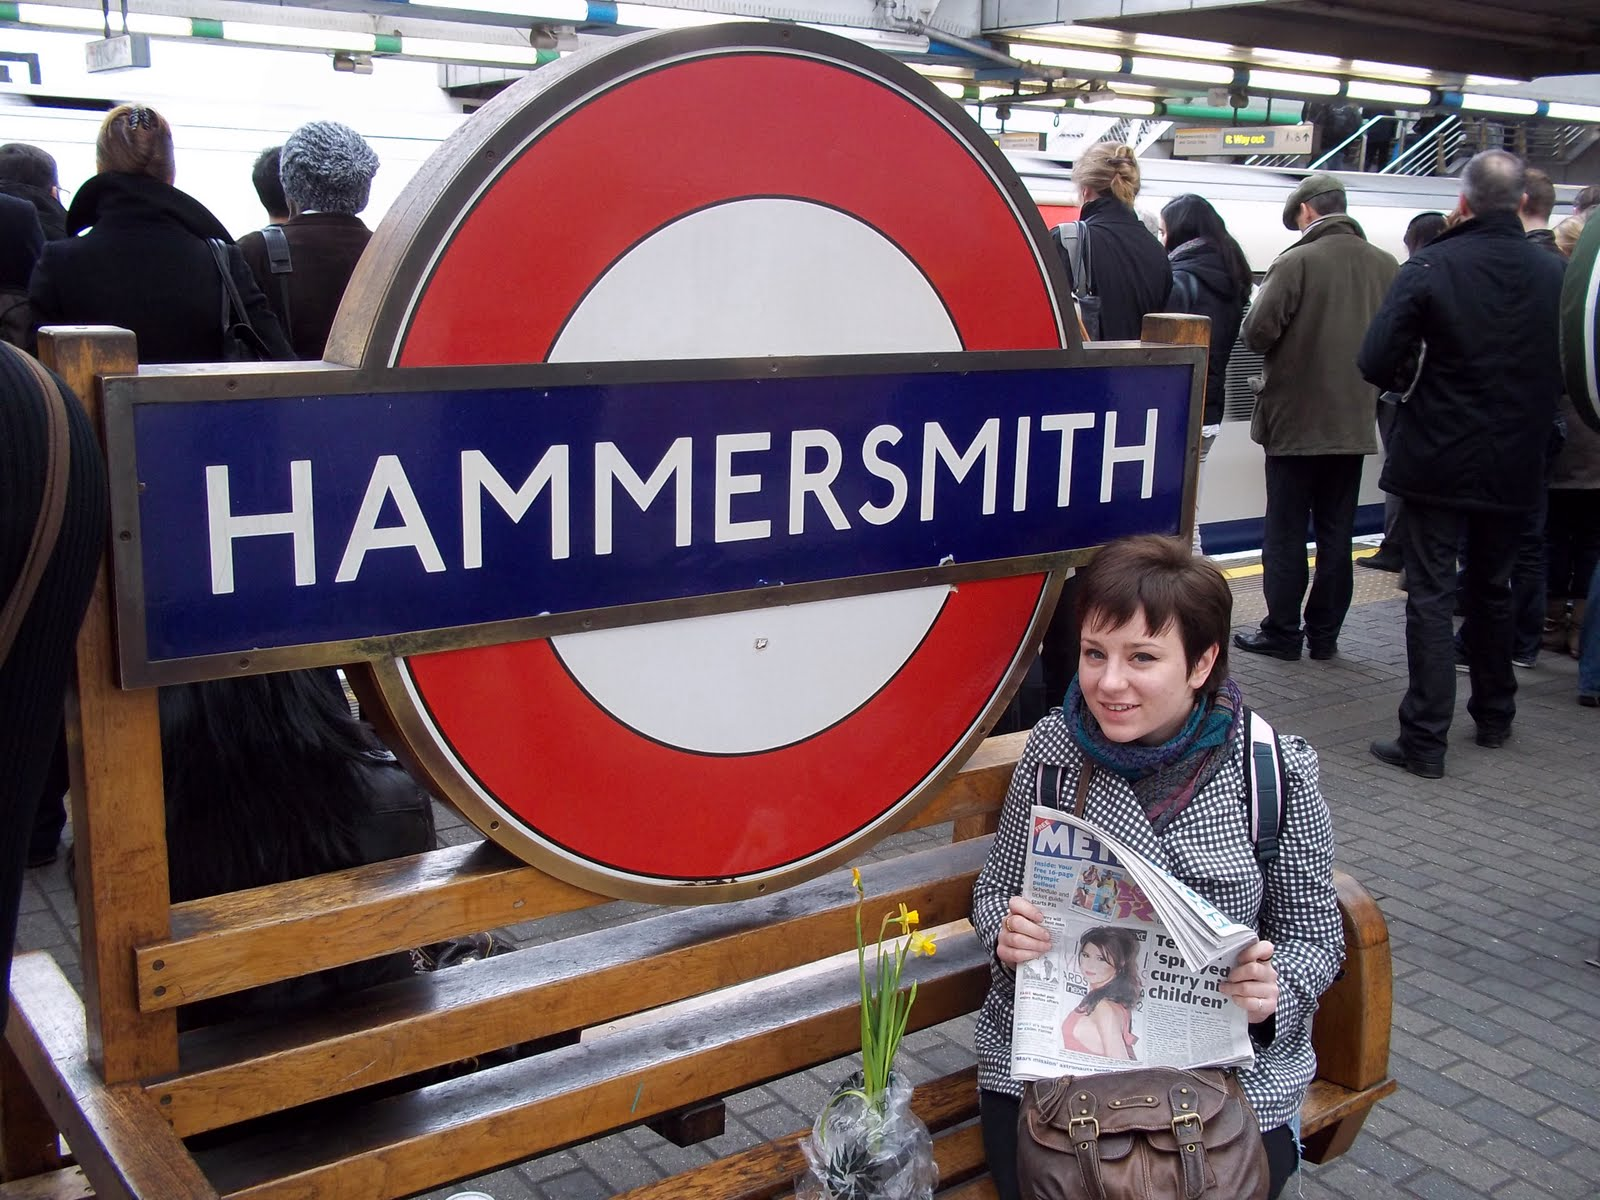 Hammersmith Business Hot Spots